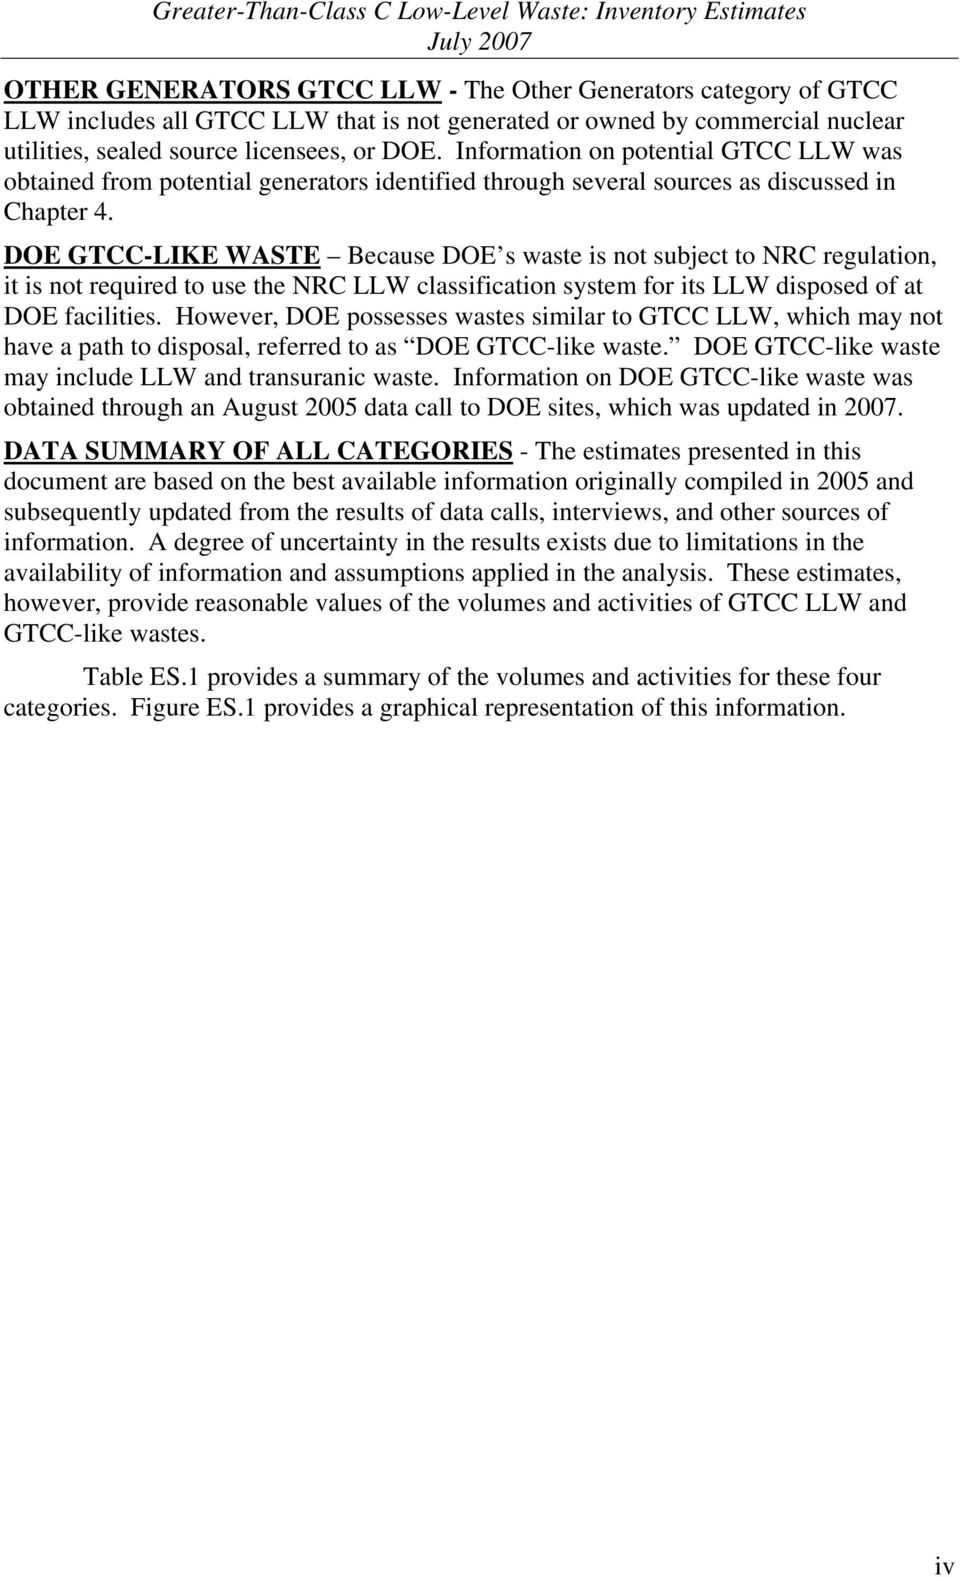 DOE GTCC-LIKE WASTE Because DOE s waste is not subject to NRC regulation, it is not required to use the NRC LLW classification system for its LLW disposed of at DOE facilities.